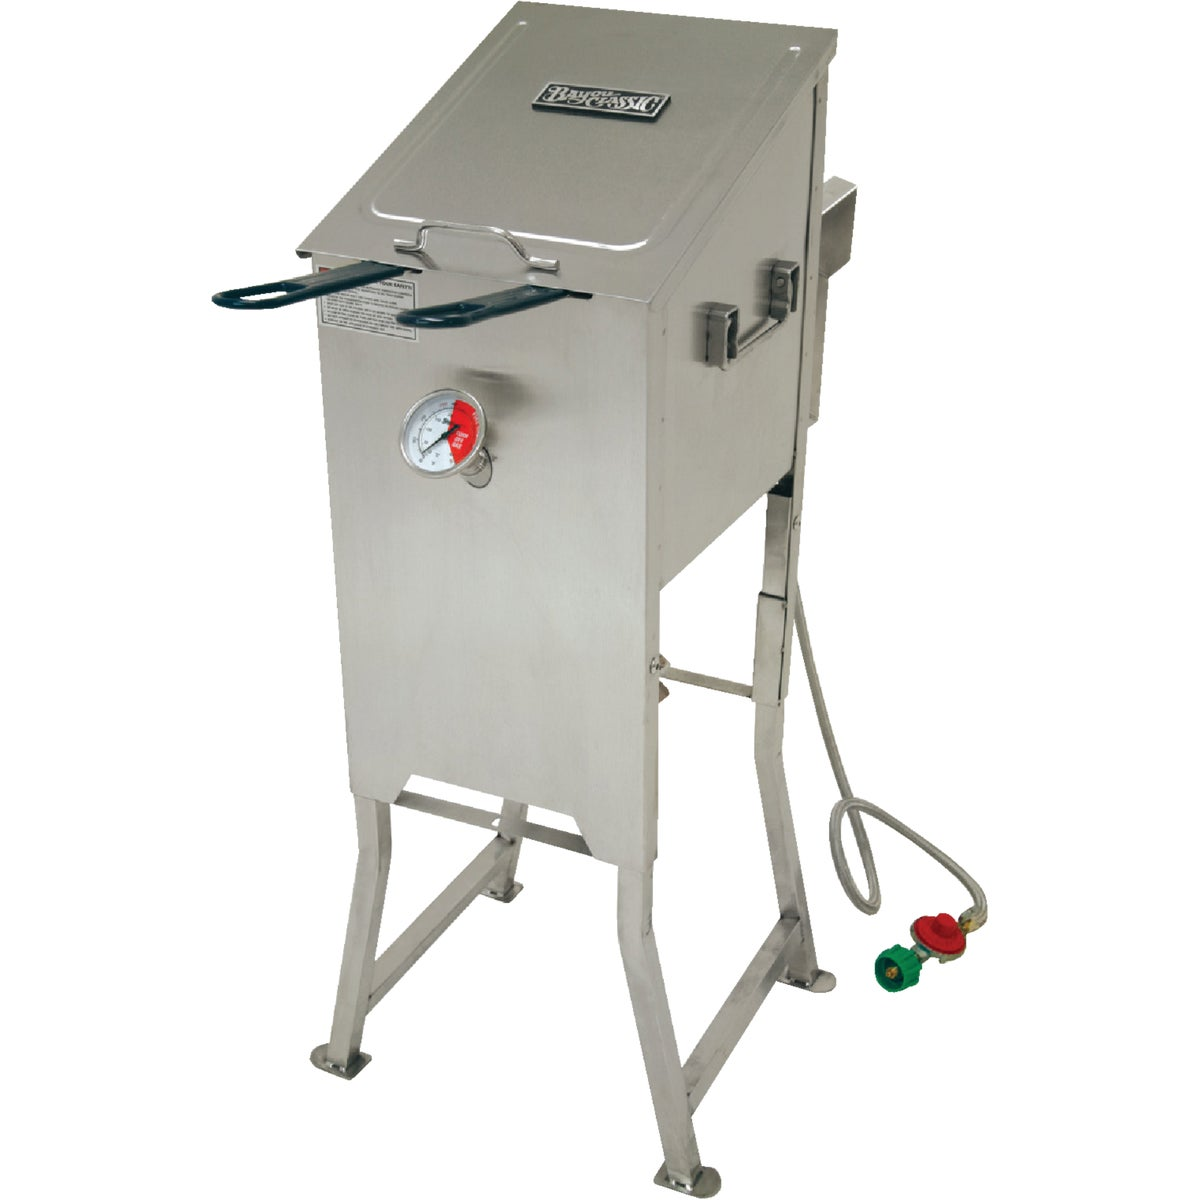 4GAL BAYOU FRYER - 700-701 by Barbour Intl